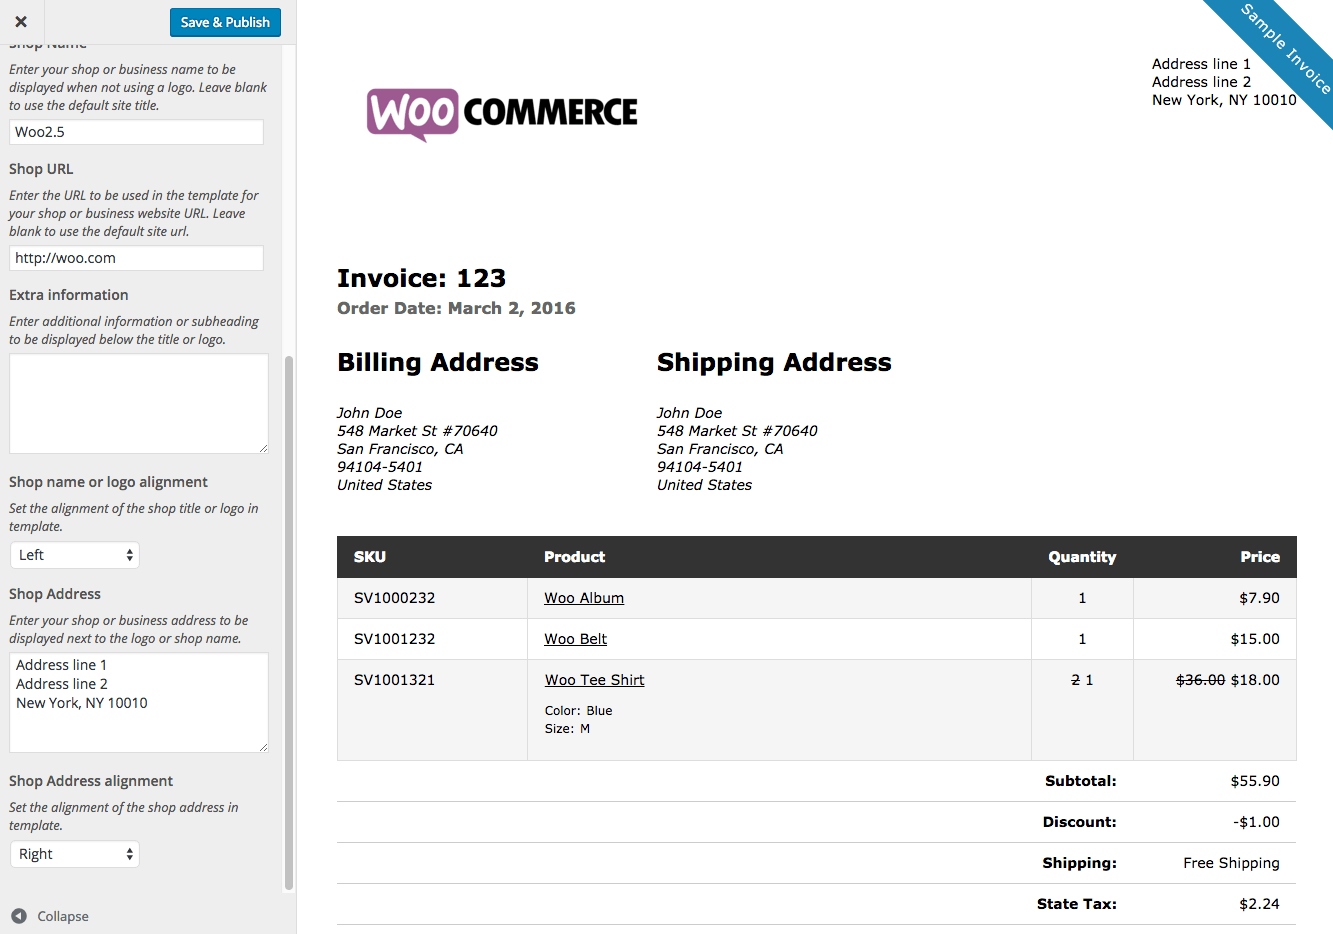 Shopdesignsus  Pretty Print Invoices Amp Packing Lists  Woocommerce With Entrancing Woocommerce Print Invoices  Packing Lists Customizer With Divine Receipt Ocr Also Receipt For Cash In Addition Nyc Cab Receipt And Not Read Receipt As Well As Hotels Com Receipt Additionally App To Scan Receipts From Woocommercecom With Shopdesignsus  Entrancing Print Invoices Amp Packing Lists  Woocommerce With Divine Woocommerce Print Invoices  Packing Lists Customizer And Pretty Receipt Ocr Also Receipt For Cash In Addition Nyc Cab Receipt From Woocommercecom